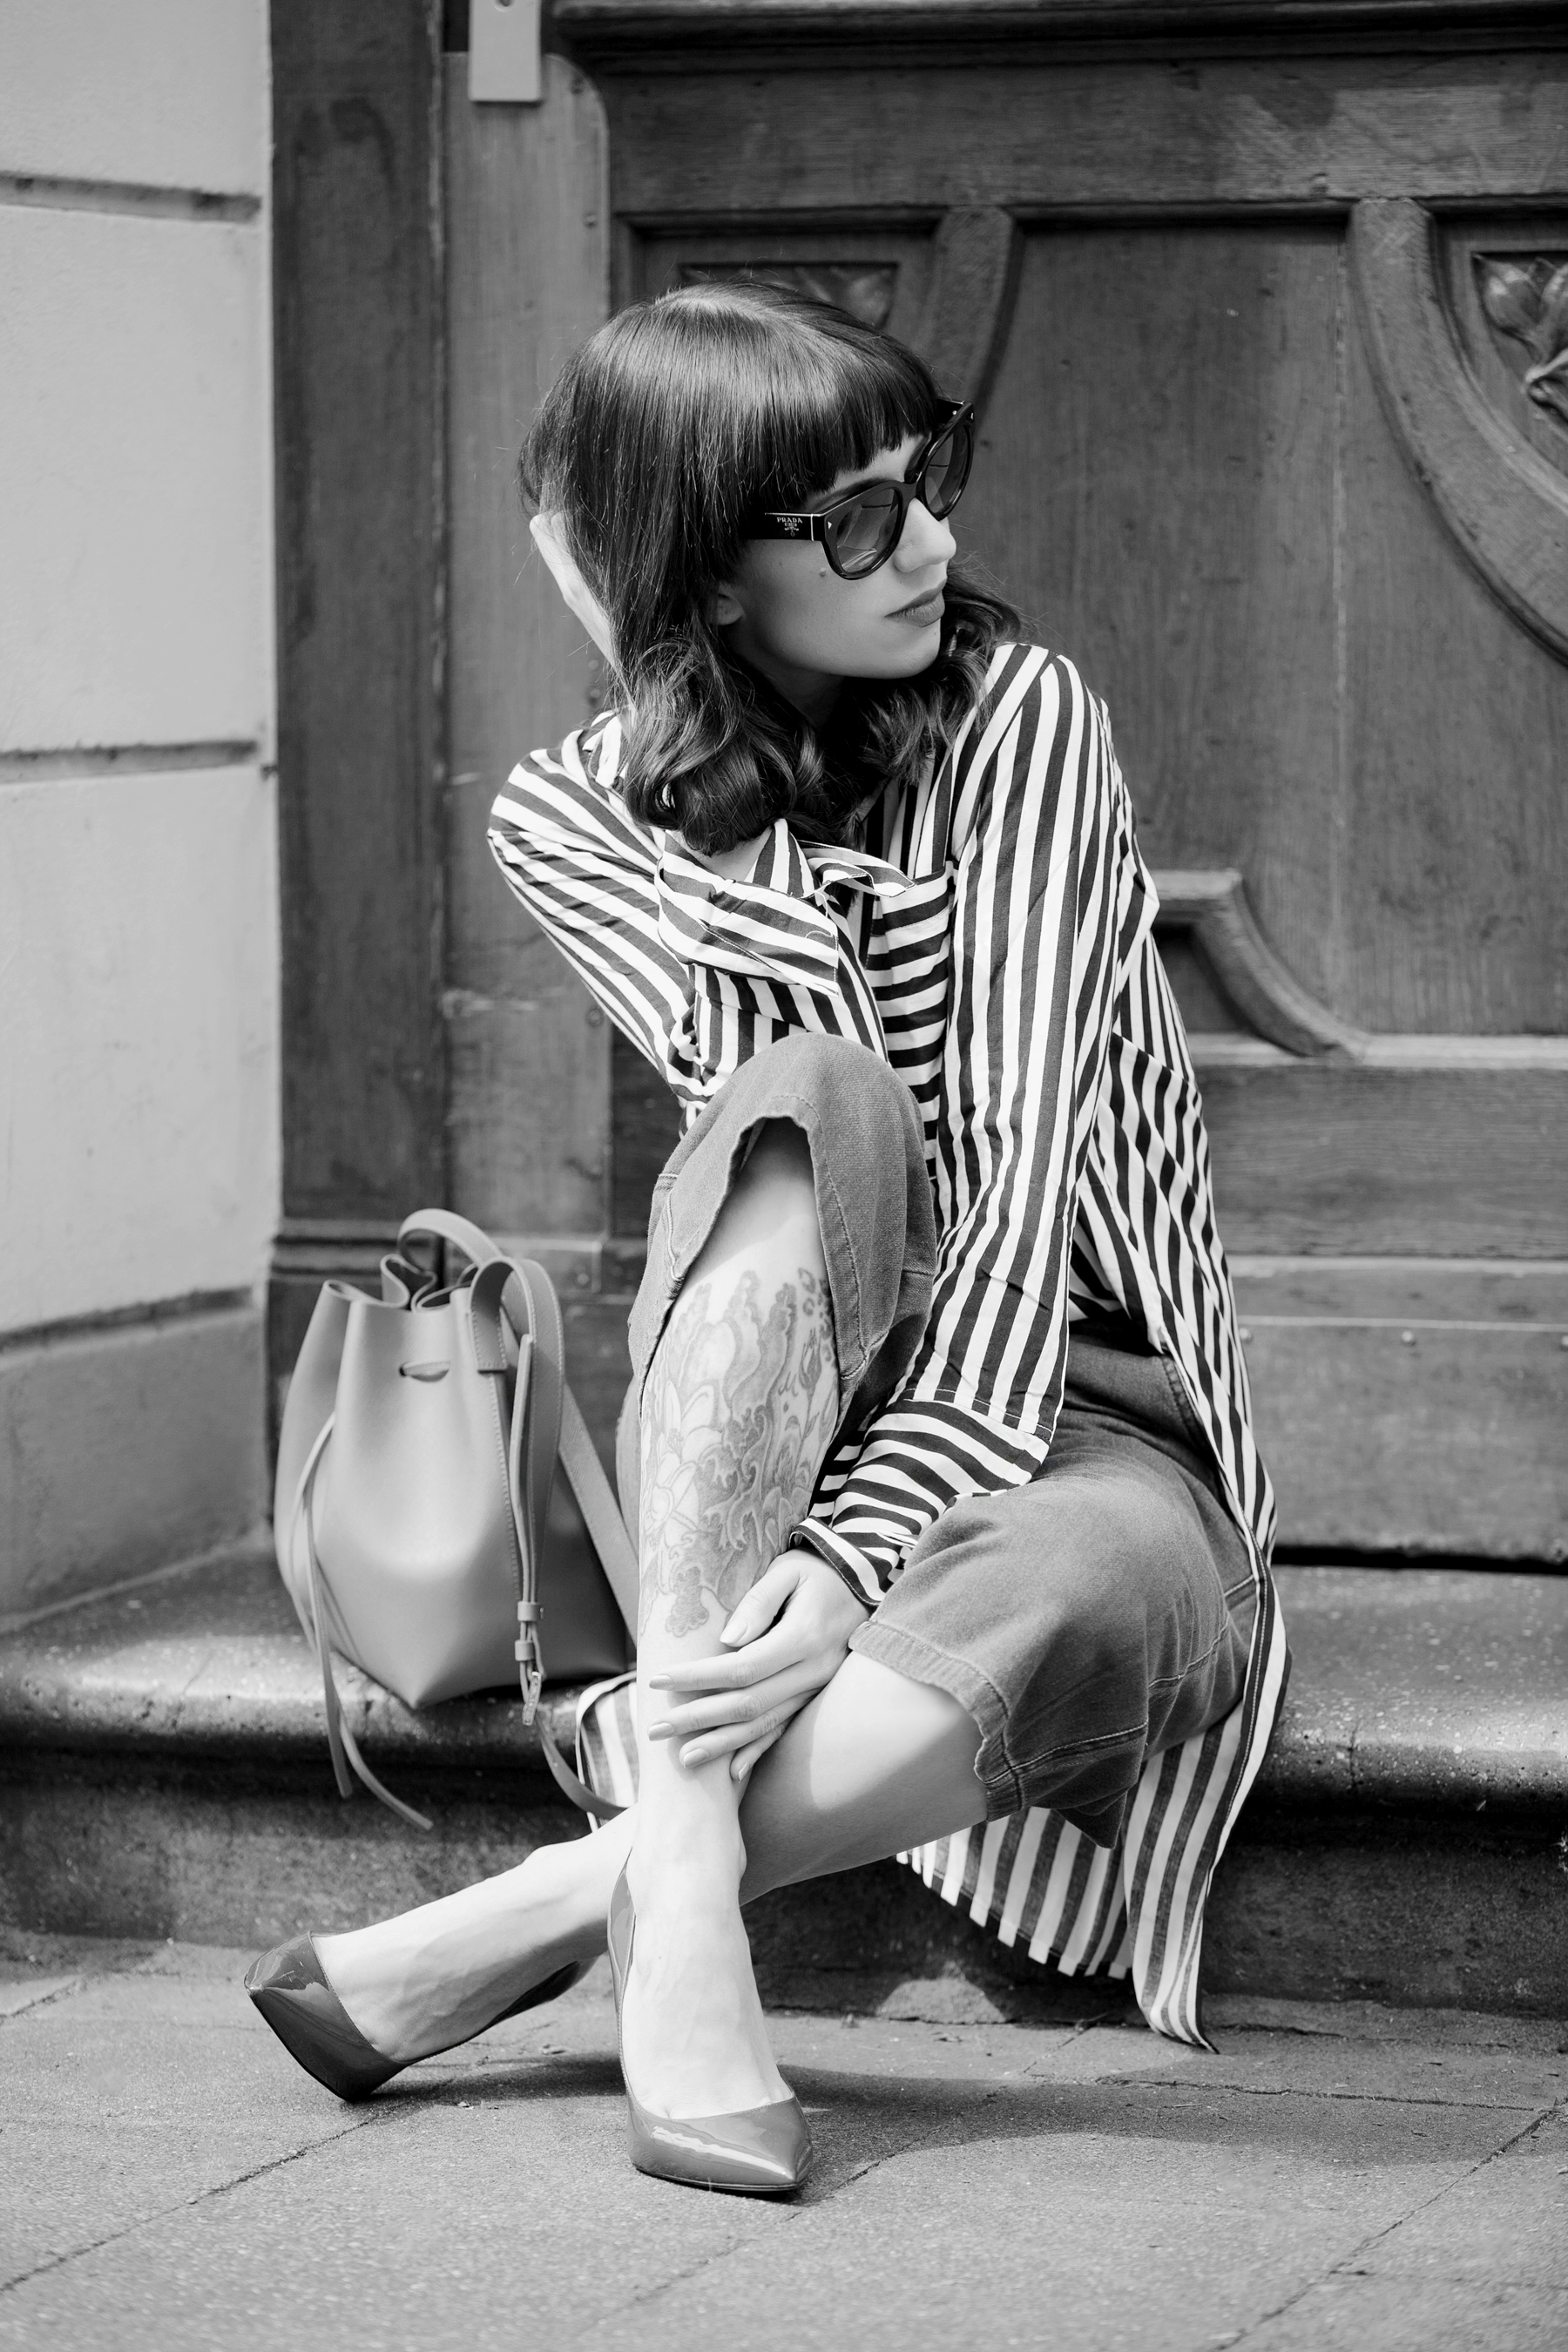 francaise chic striped outfit ootd look of the day lookbook love pretty parisienne outfit denim culottes vero moda edited striped shirt lancaster paris bucket bag prada mister spex sunglasses pumps cats & digs fashionblog ricarda schernus modeblog 1